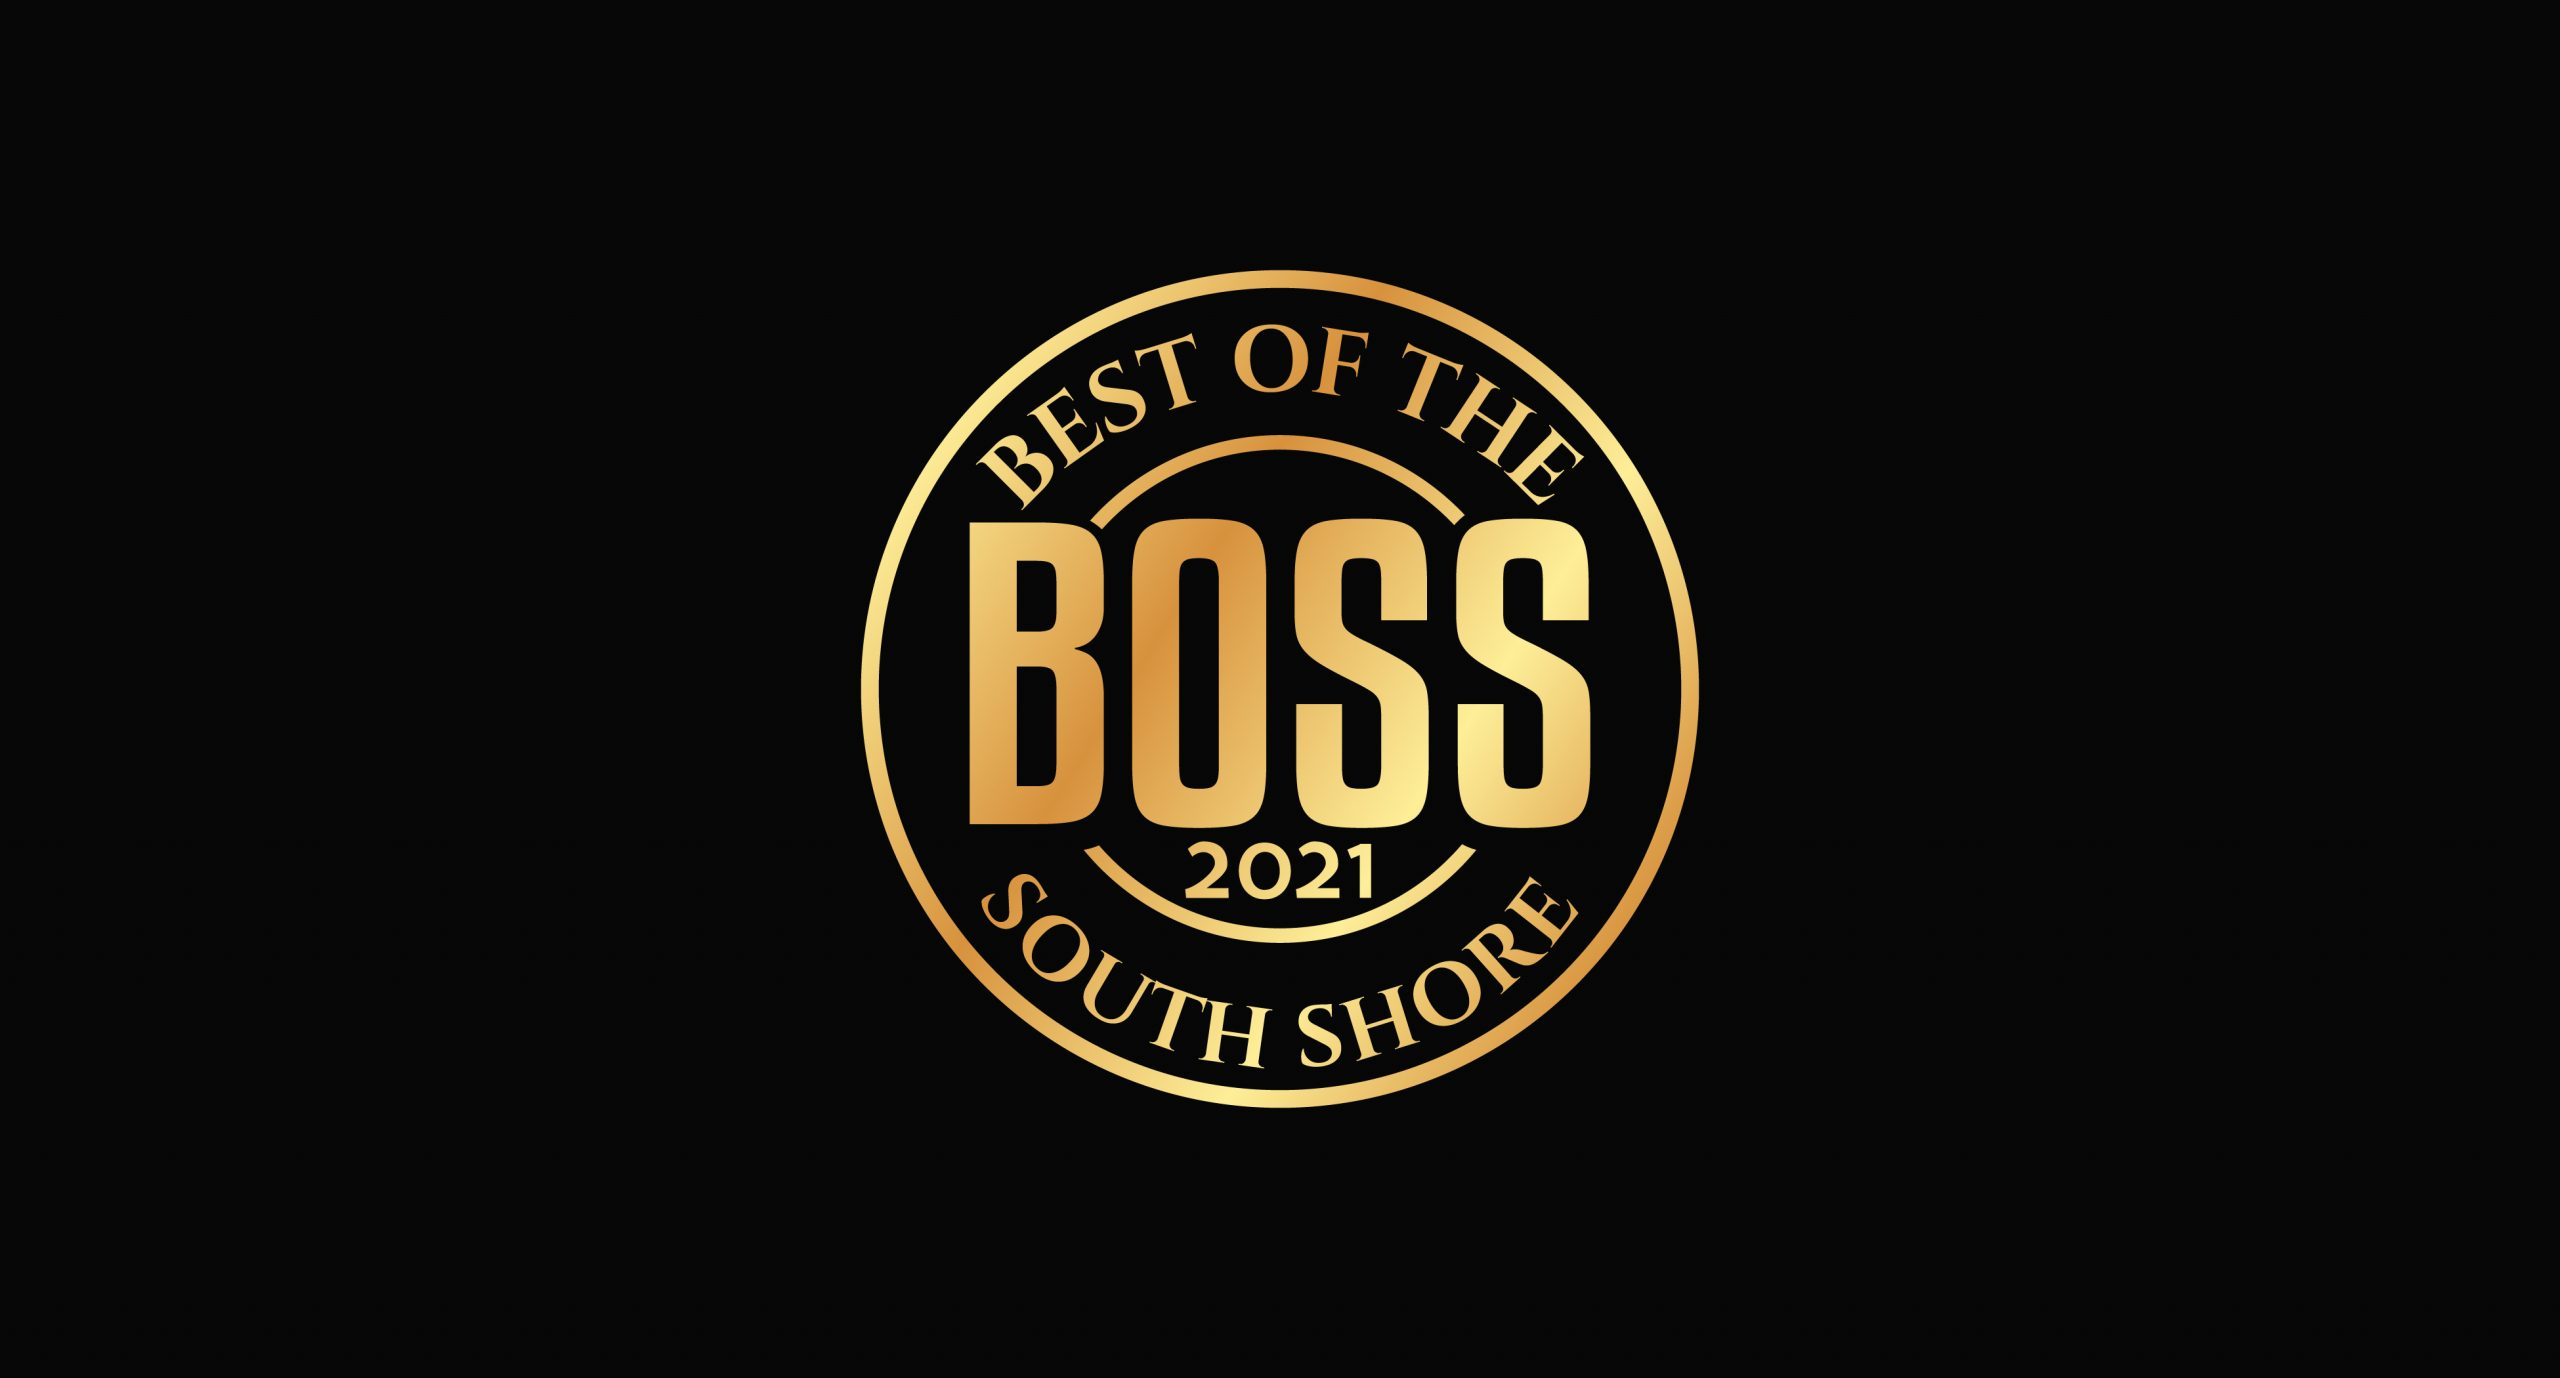 BOSS Best of the South Shore